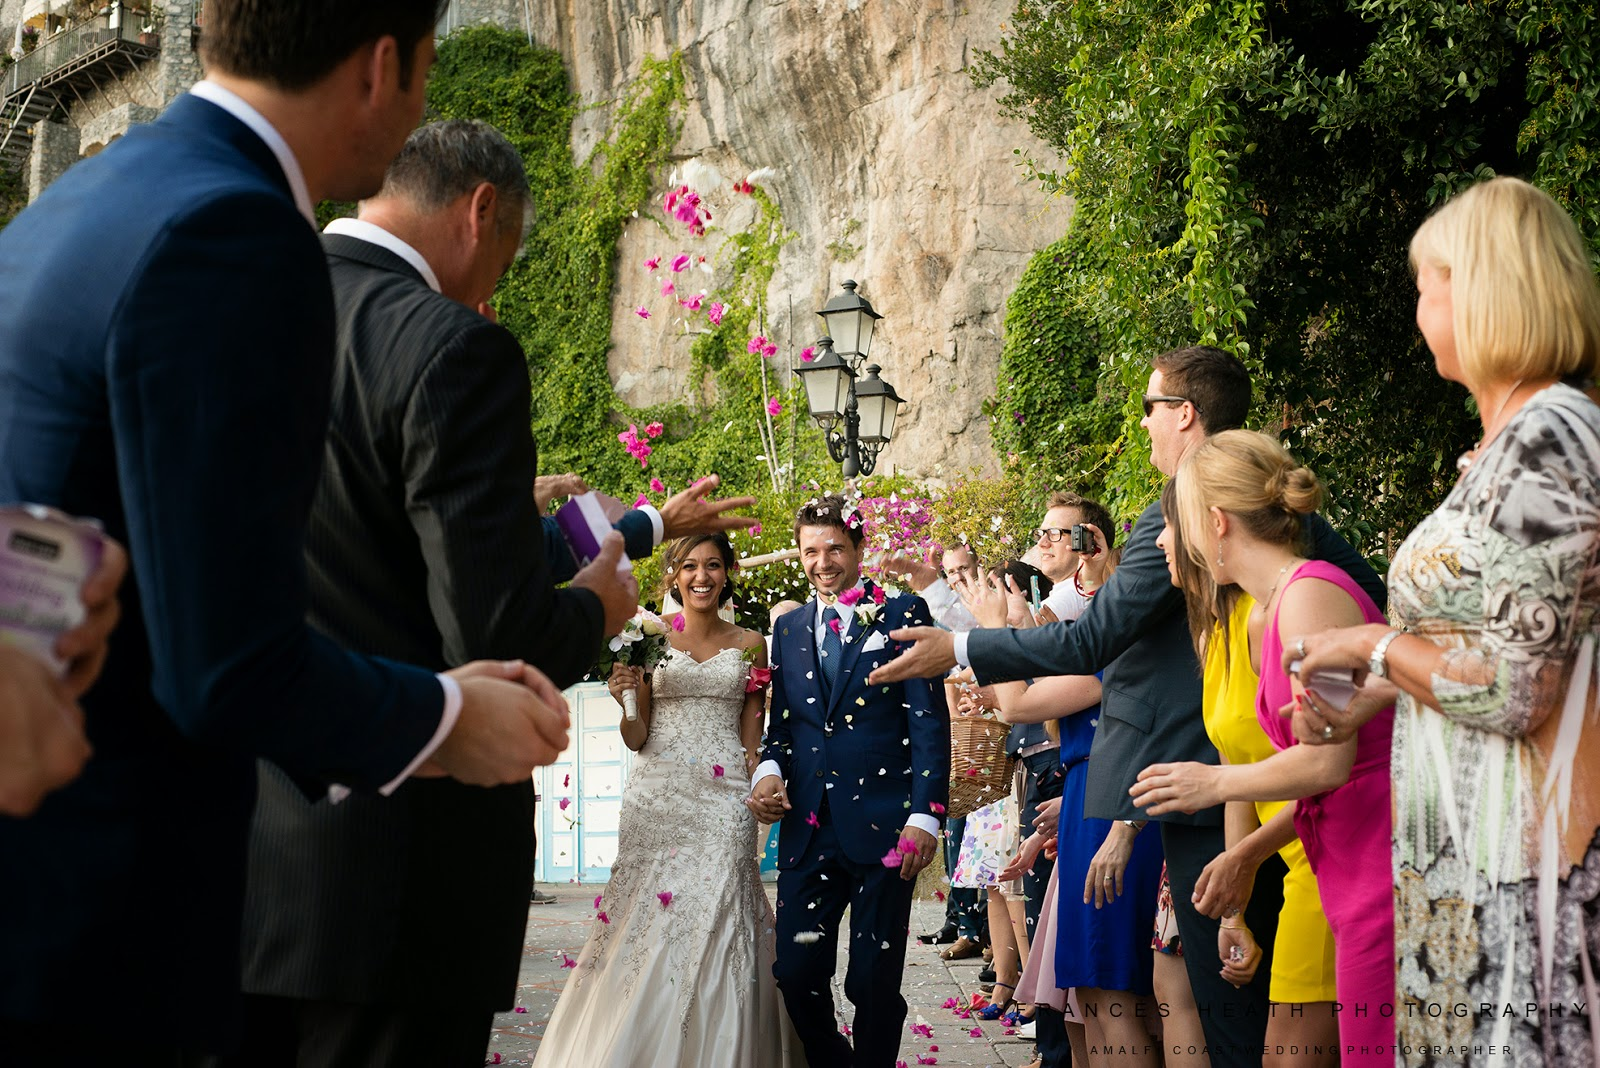 Wedding guests throw confetti at bride and groom in Positano